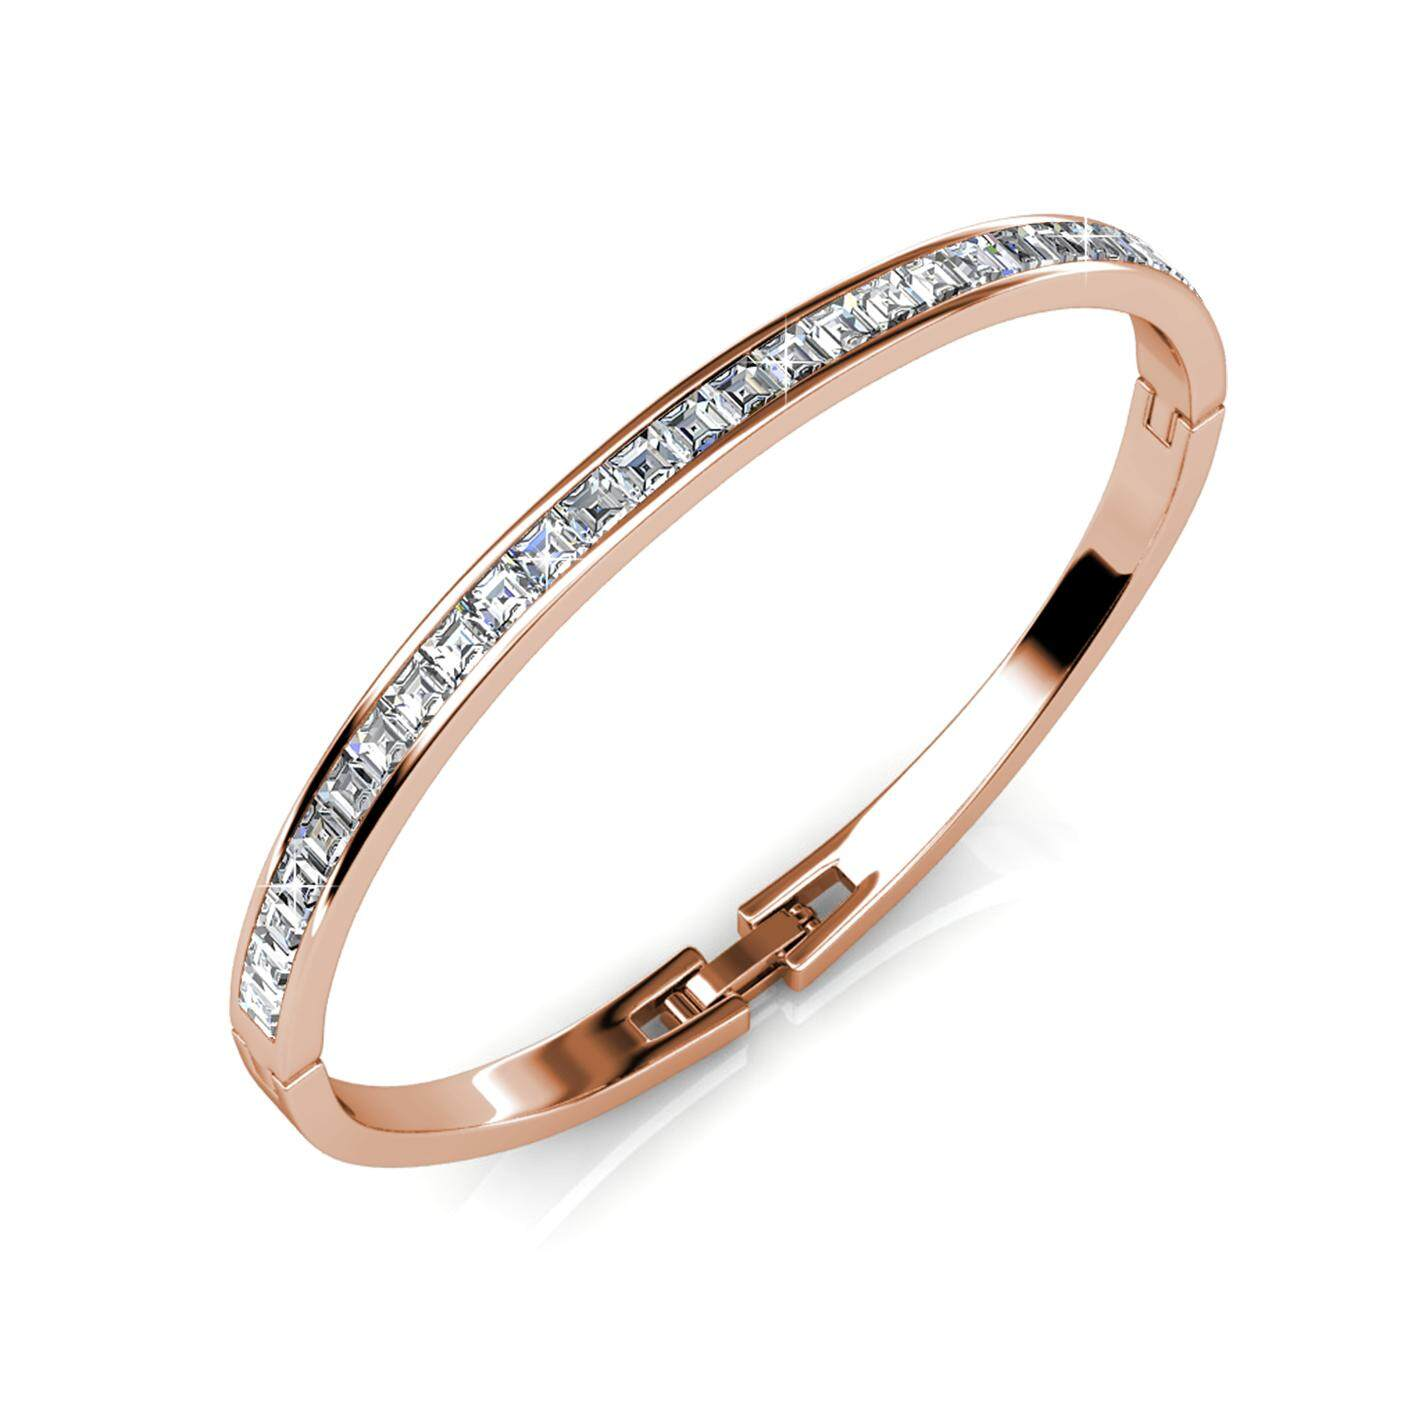 Her Jewellery Chic Bangle (White / Rose Gold) embellished with Crystals from Swarovski